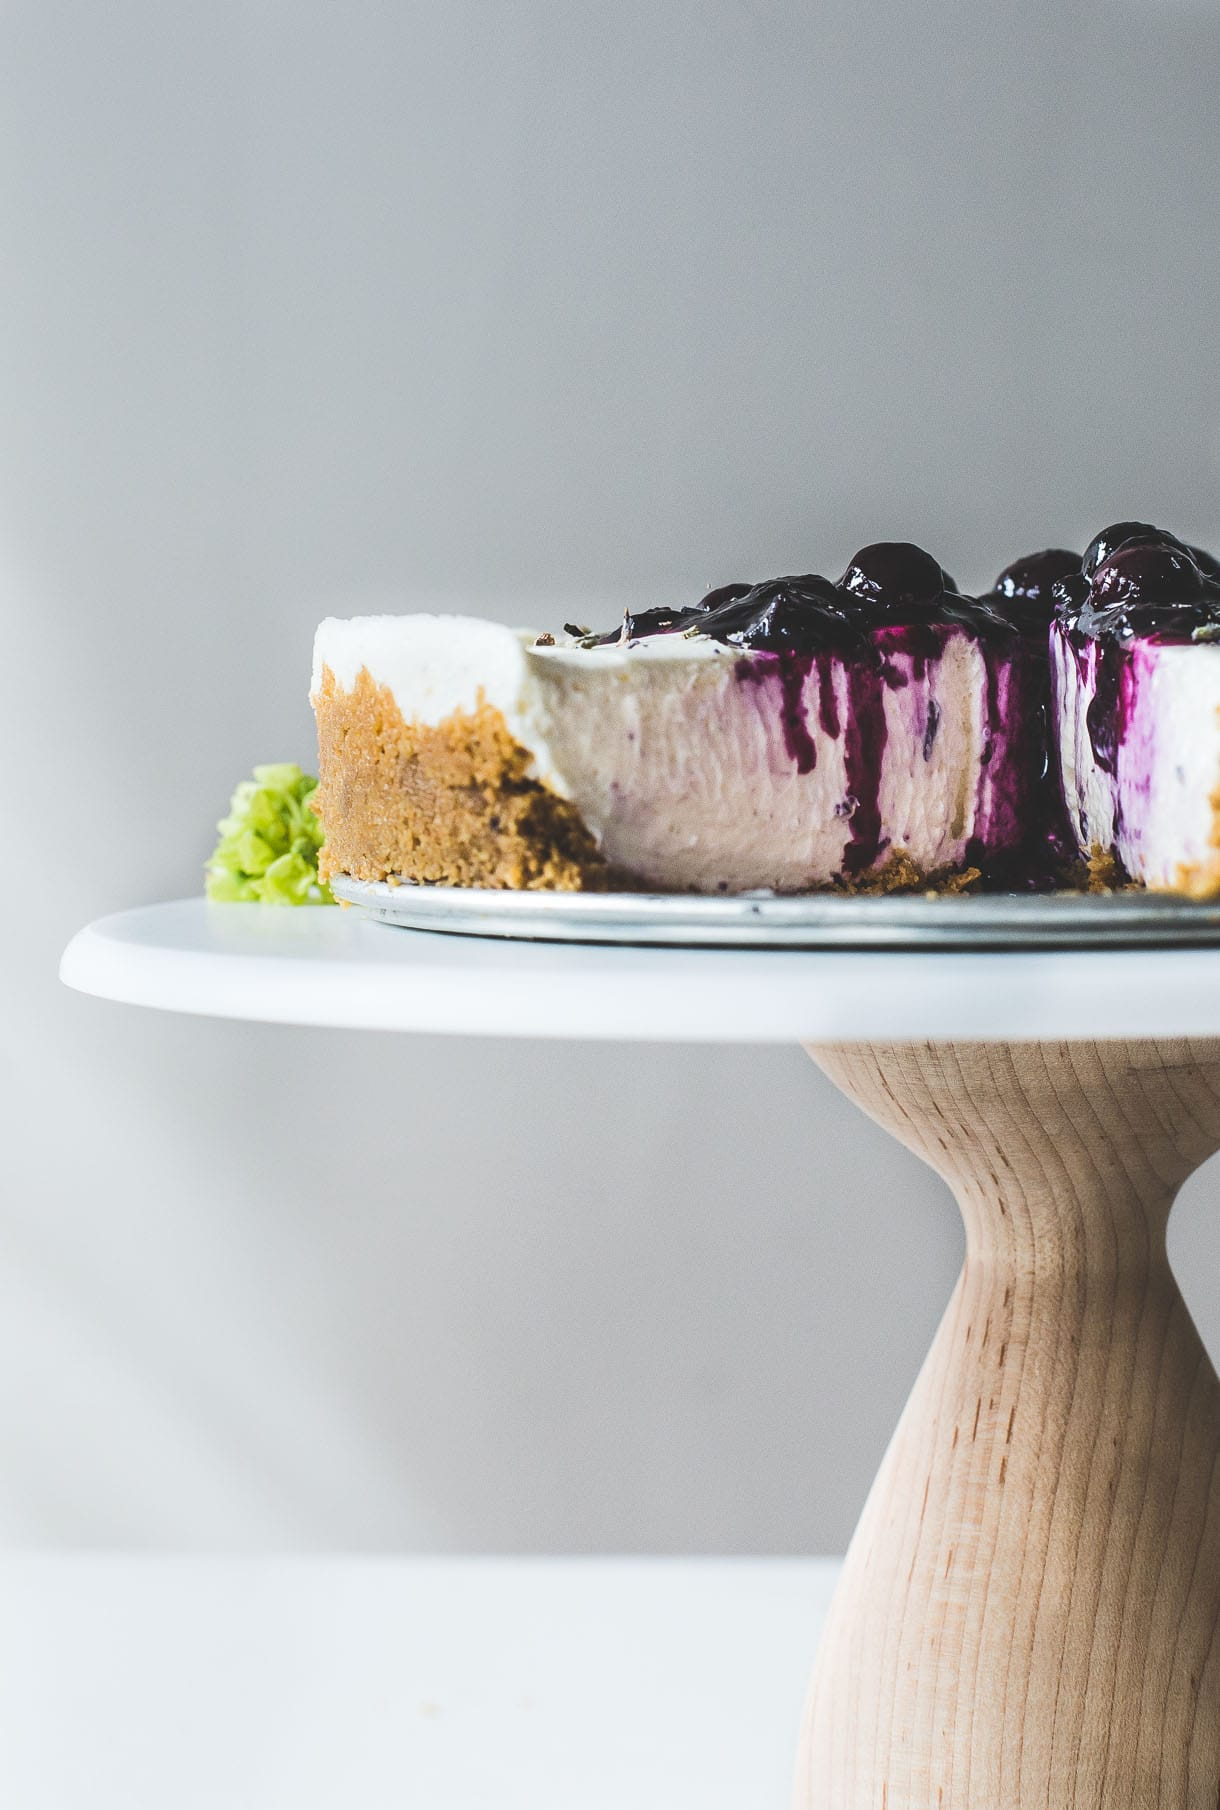 No-Bake Blueberry Lavender Cheesecake